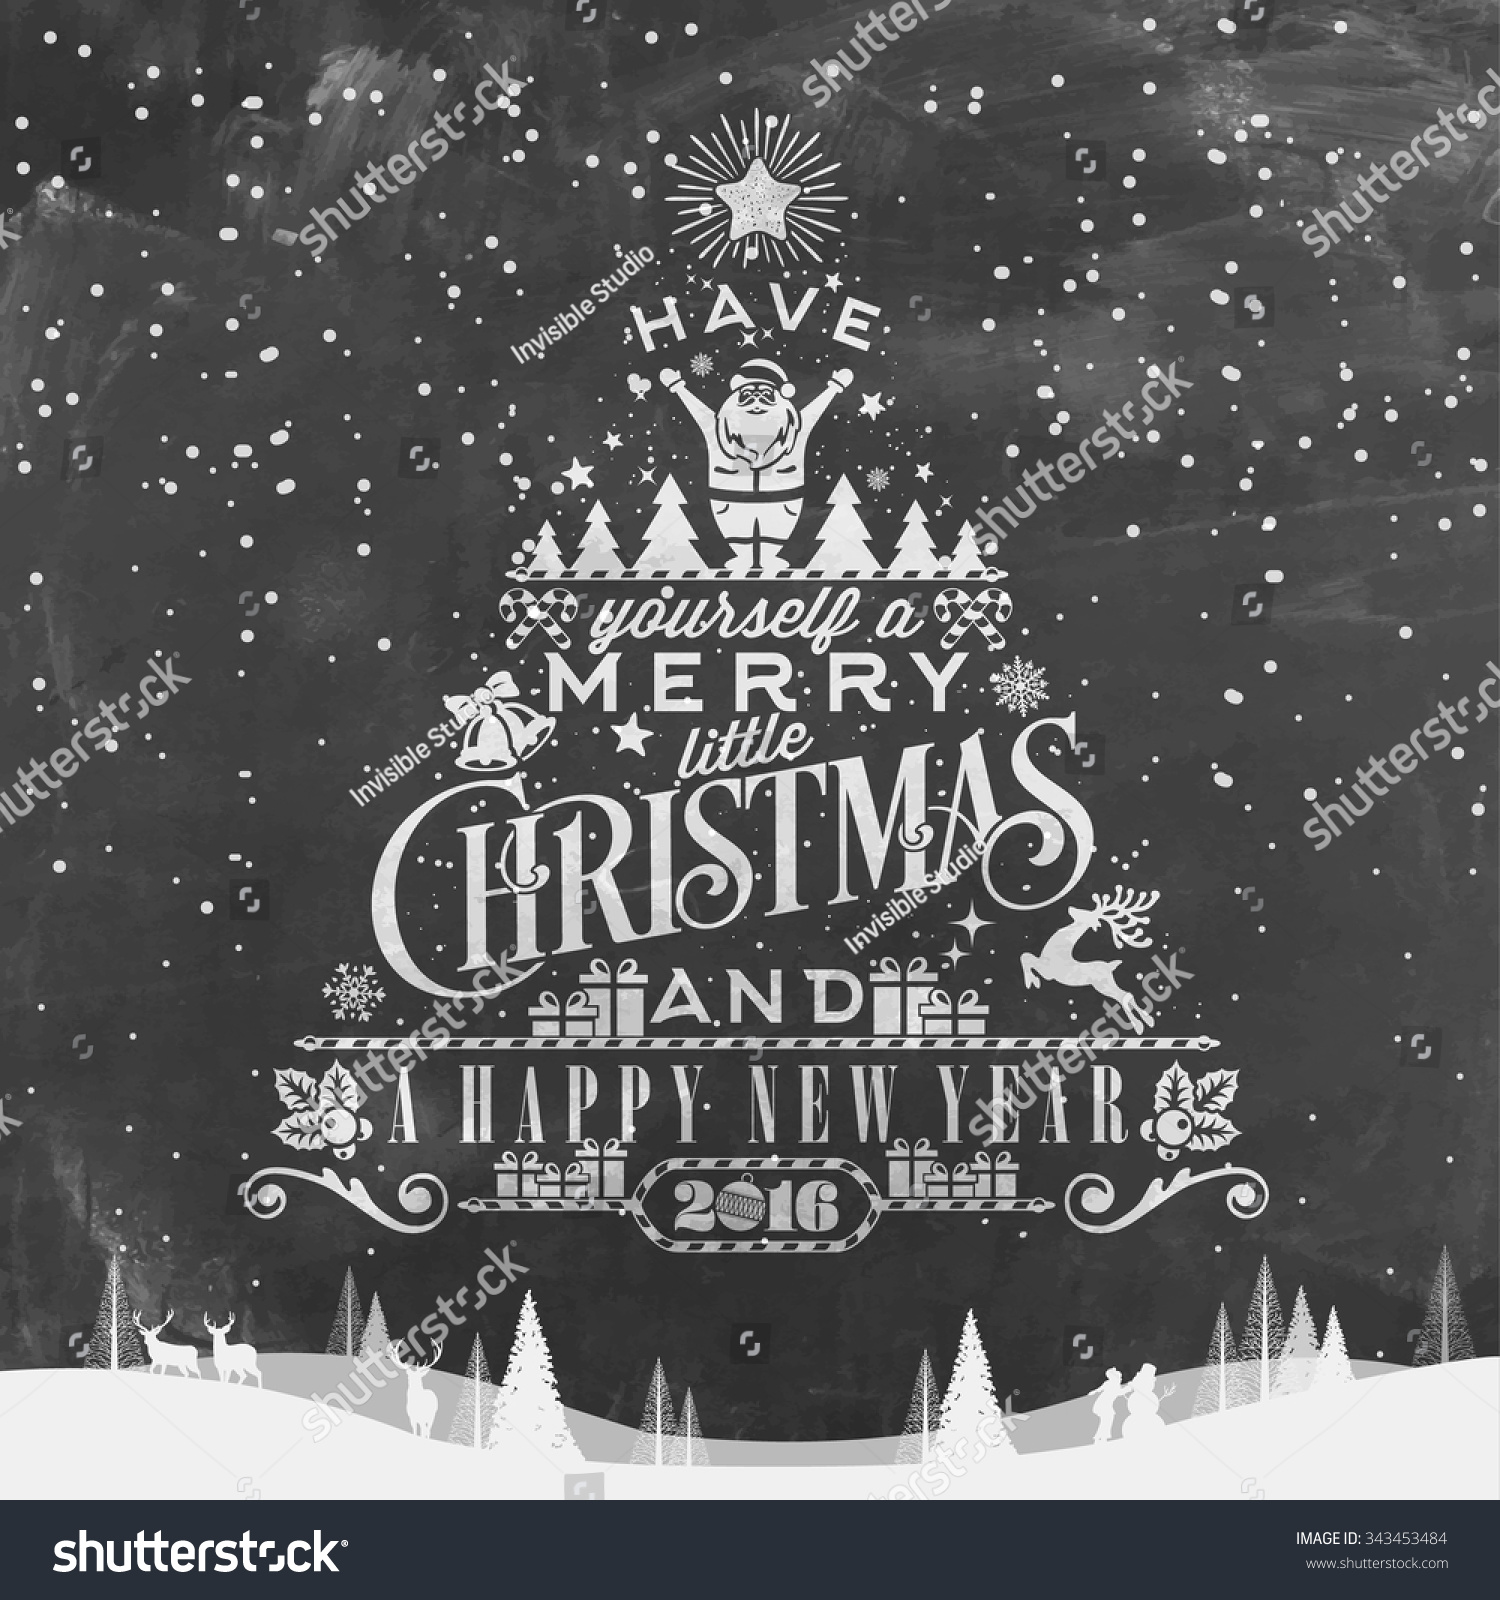 Have Yourself A Merry Little Christmas.Have Yourself Merry Little Christmas Happy Stock Vector